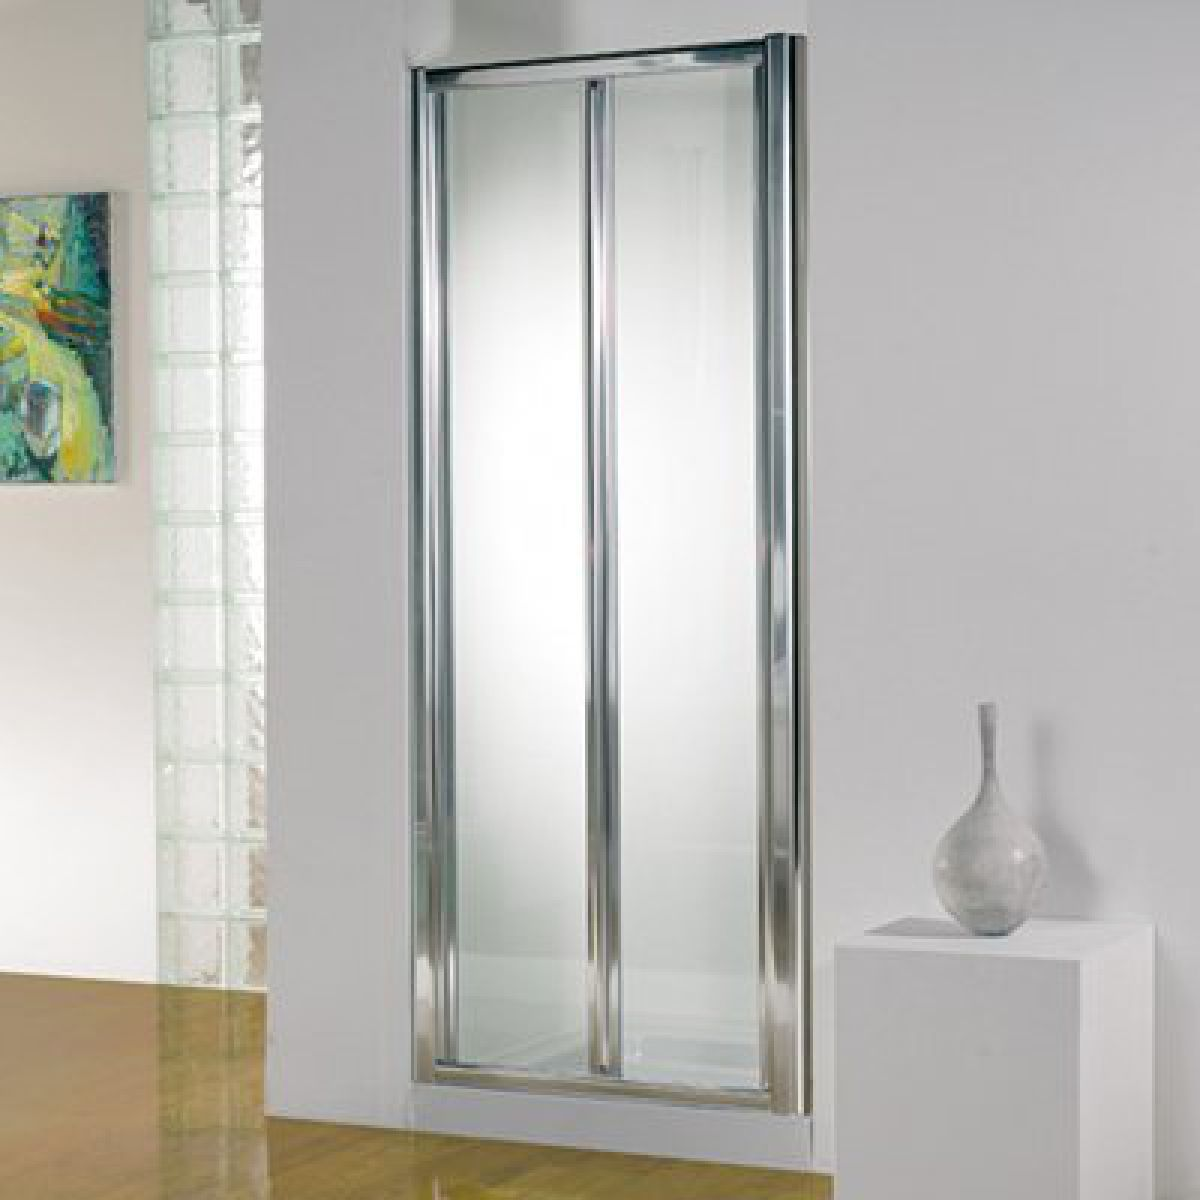 Kudos Original Bi Fold Shower Door Uk Bathrooms Kudos Original Bi Fold  Shower Door Eventelaan Image Part 41